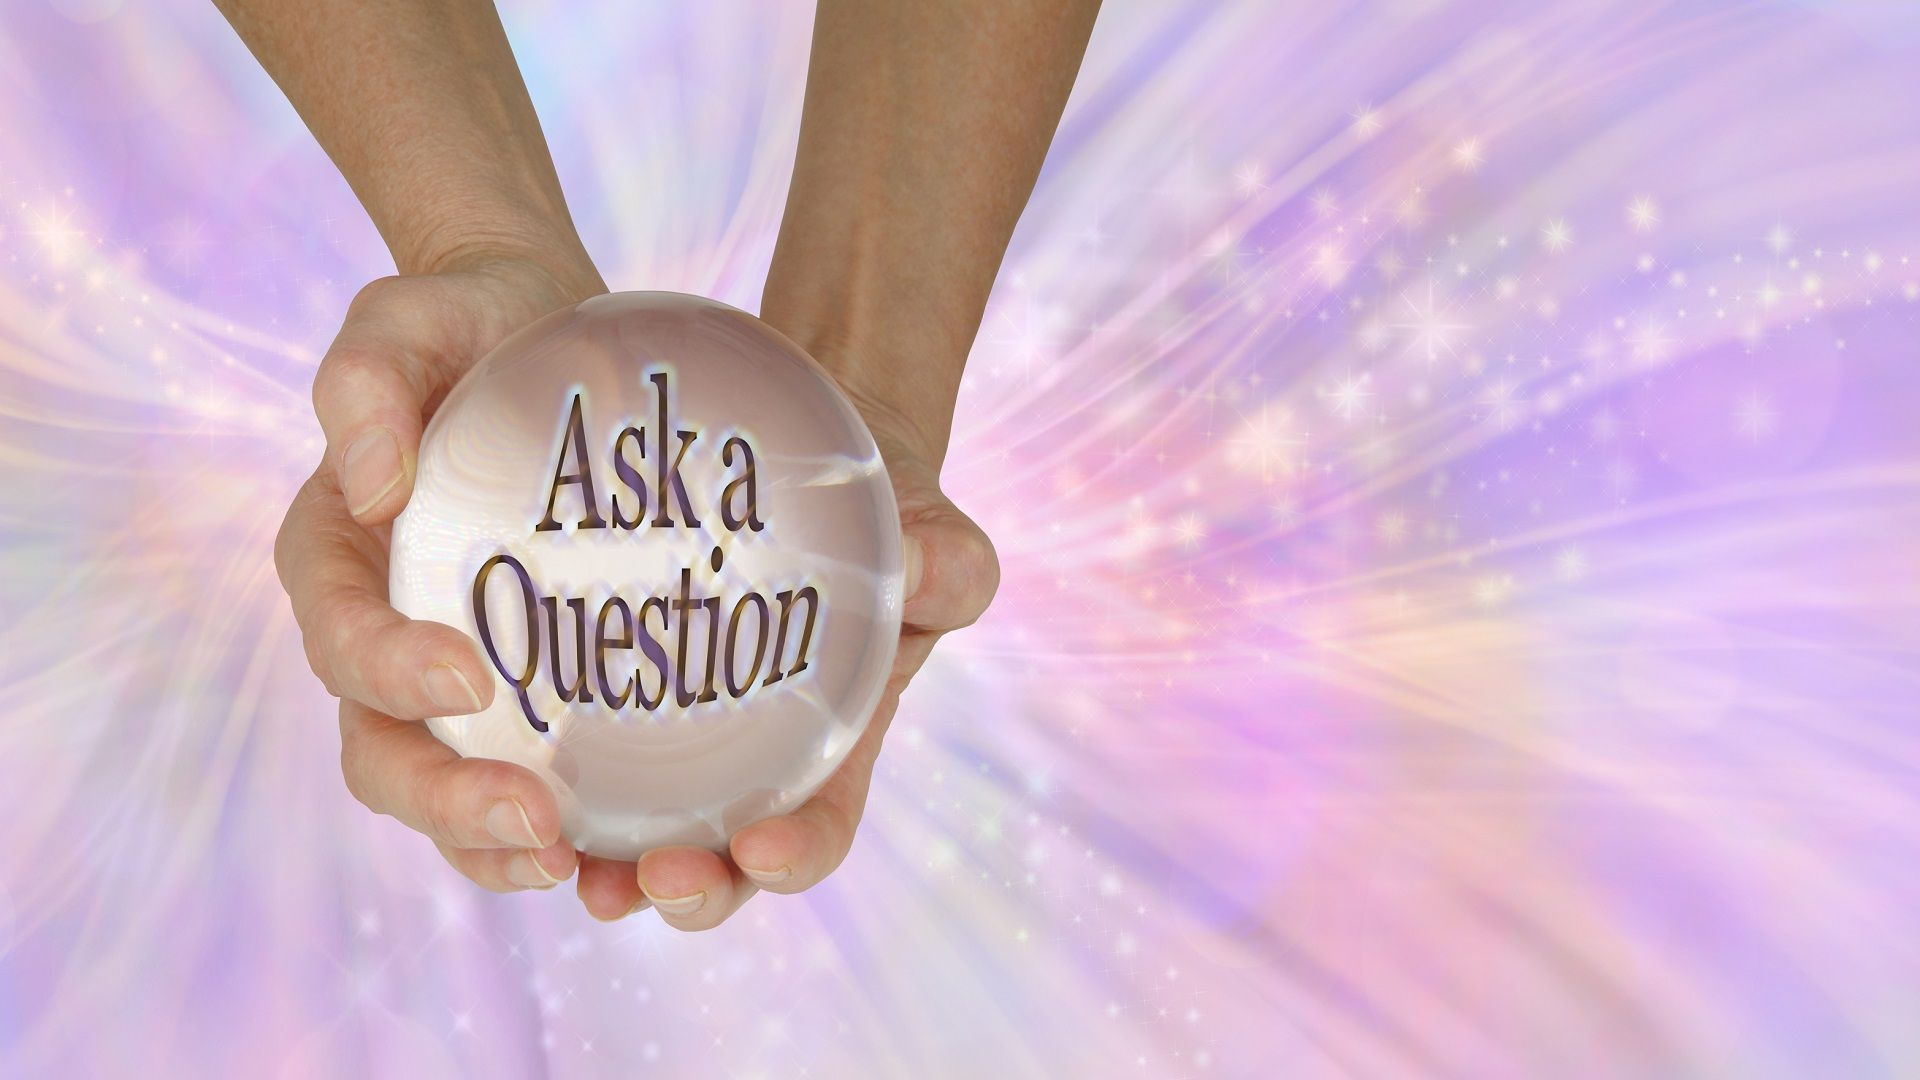 How to know if you have Psychic abilities?